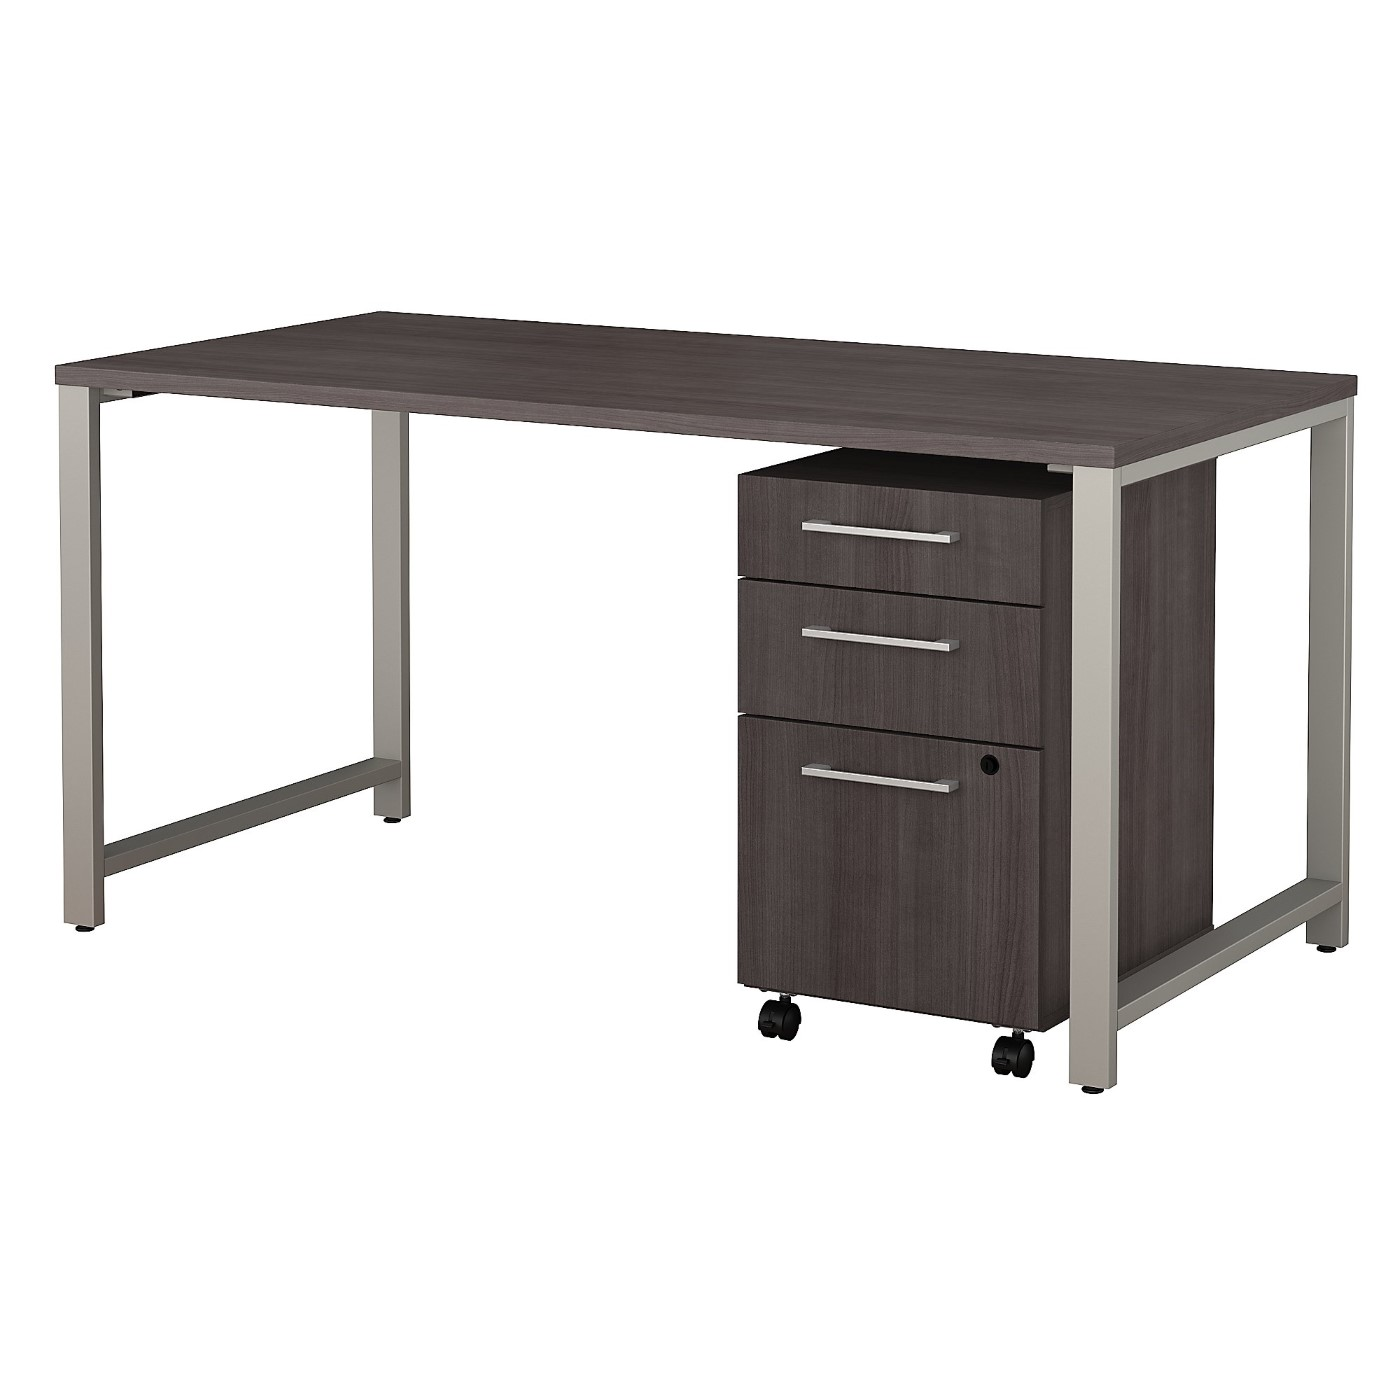 BUSH BUSINESS FURNITURE 400 SERIES 60W X 30D TABLE DESK WITH 3 DRAWER MOBILE FILE CABINET. FREE SHIPPING SALE DEDUCT 10% MORE ENTER '10percent' IN COUPON CODE BOX WHILE CHECKING OUT.